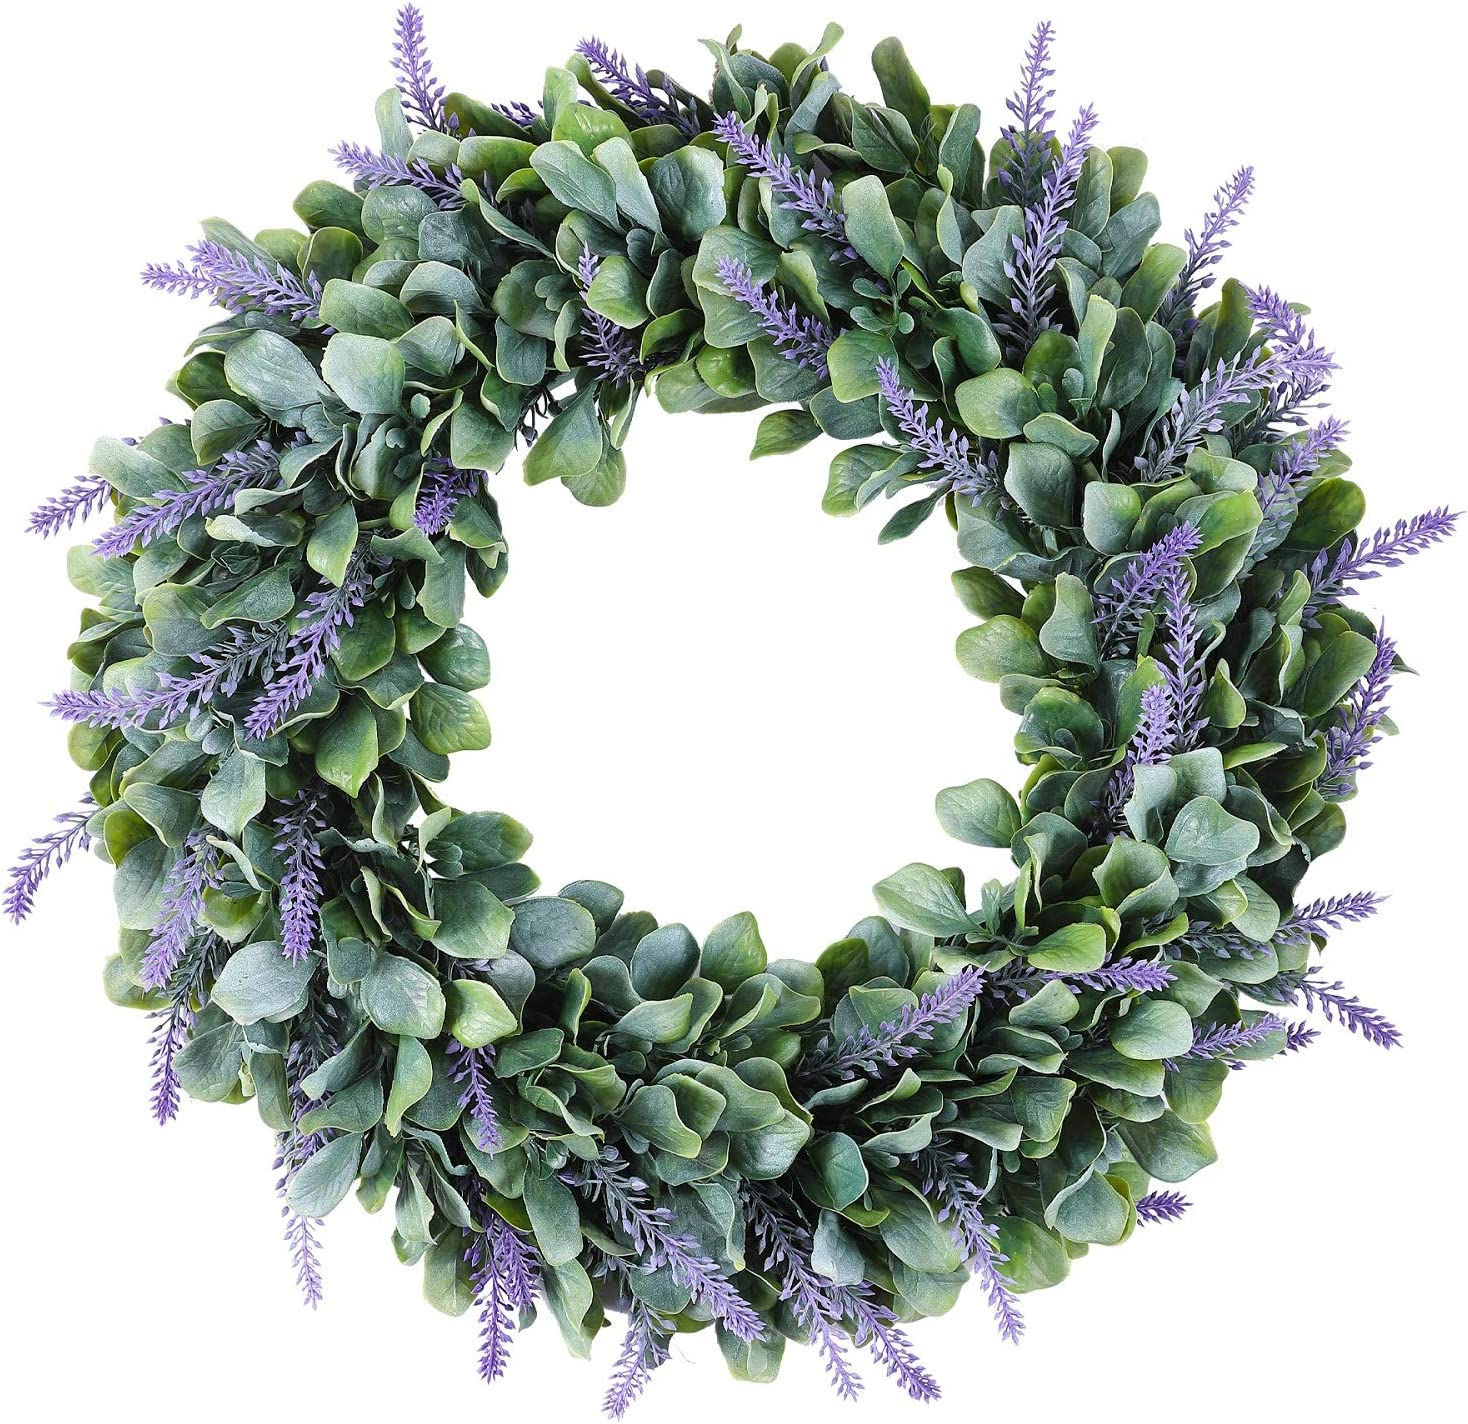 Mr.Bom Front Door Wreath 18 Inch Artificial Lavender Wreaths Christmas Wedding Decor Winter Spring Summer Fall Boxwood Outdoor Indoor Wall Farmhouse Decorations Large Kitchen Welcome Flower Window